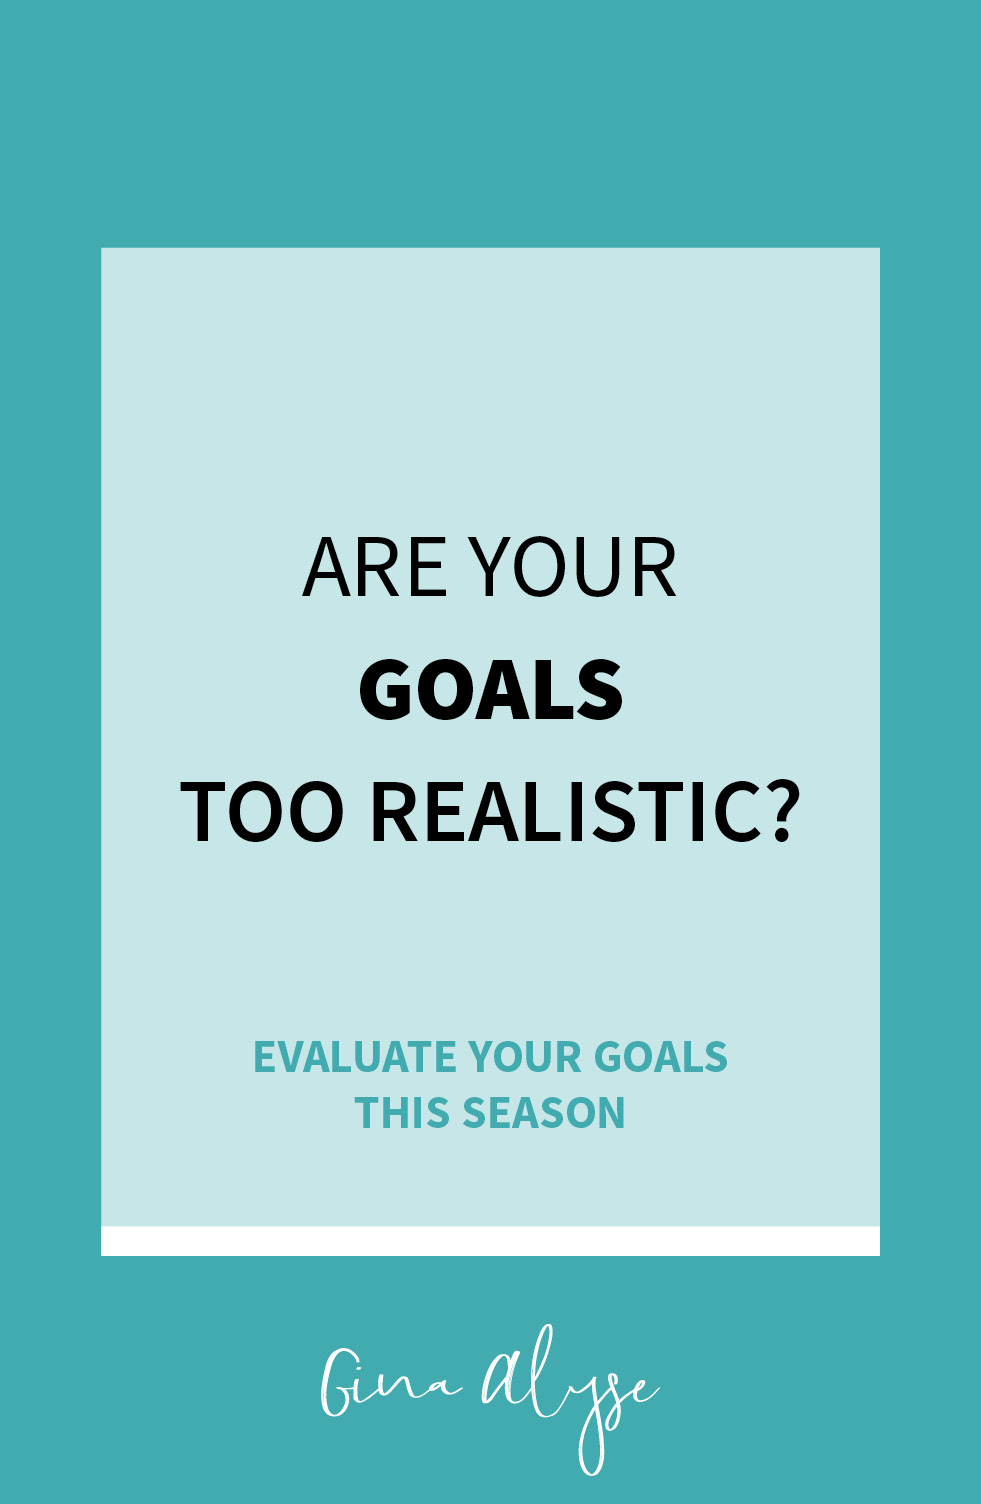 Are your goals too realistic?